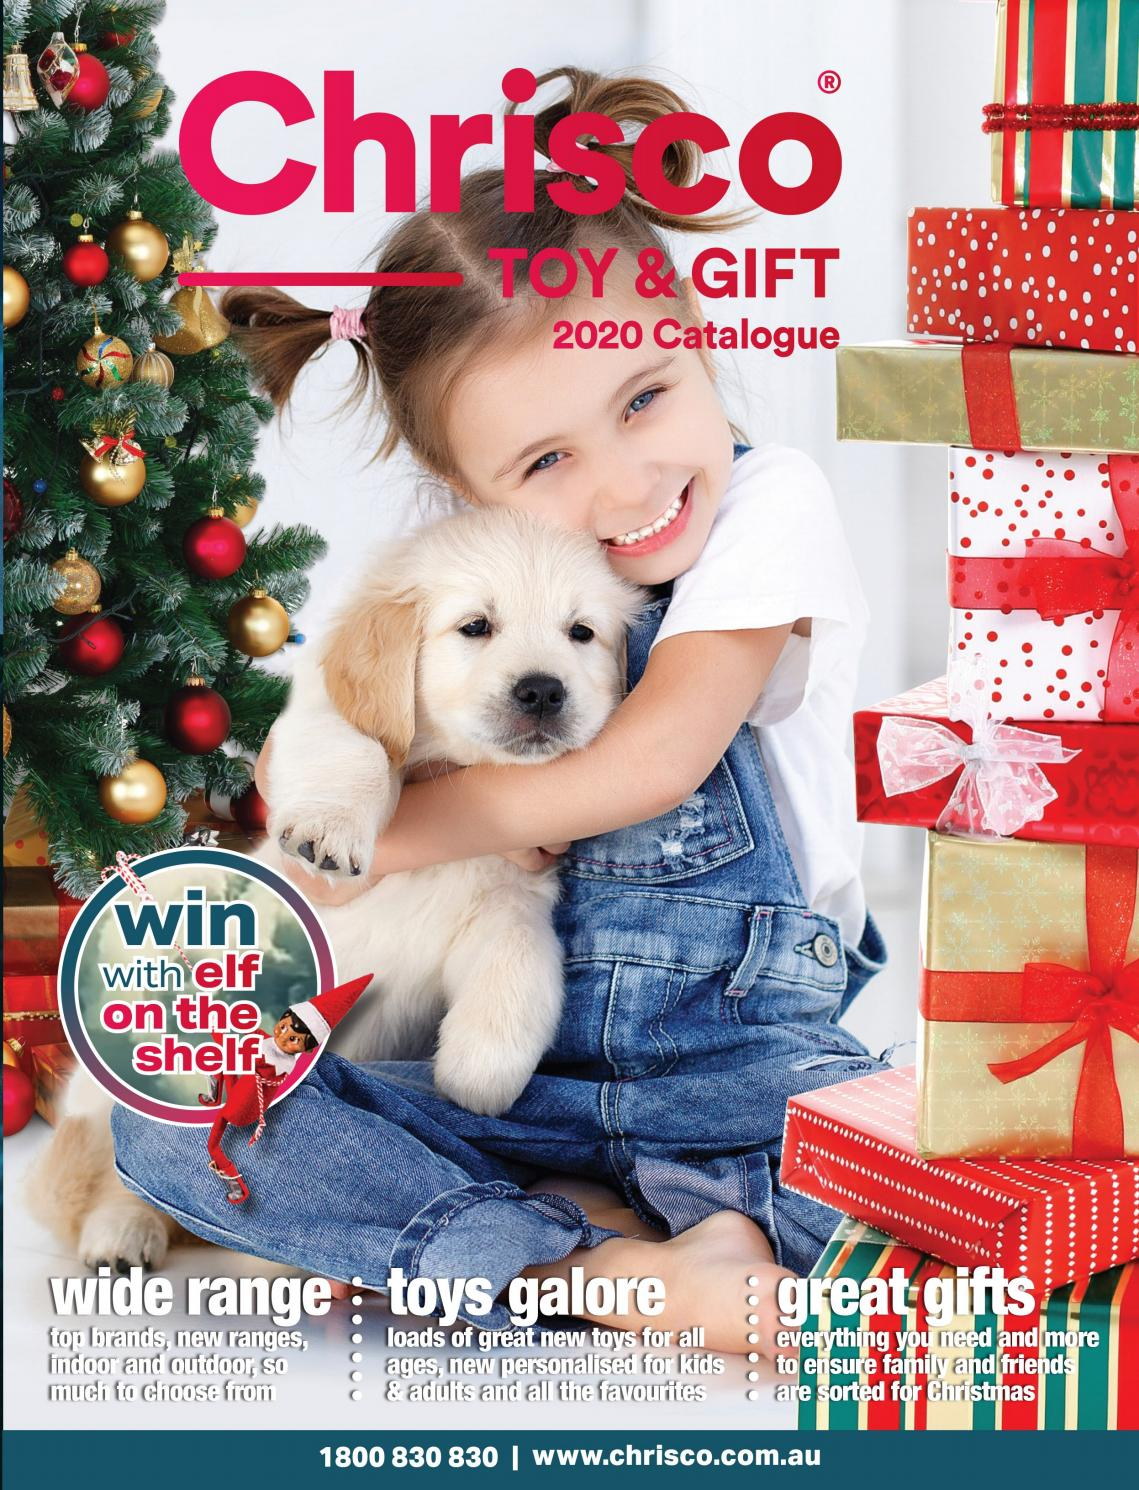 Kids Christmas Toys 2020 Catalog Kids Toys and Gifts Catalogue 2020 by Chrisco Hamper   issuu